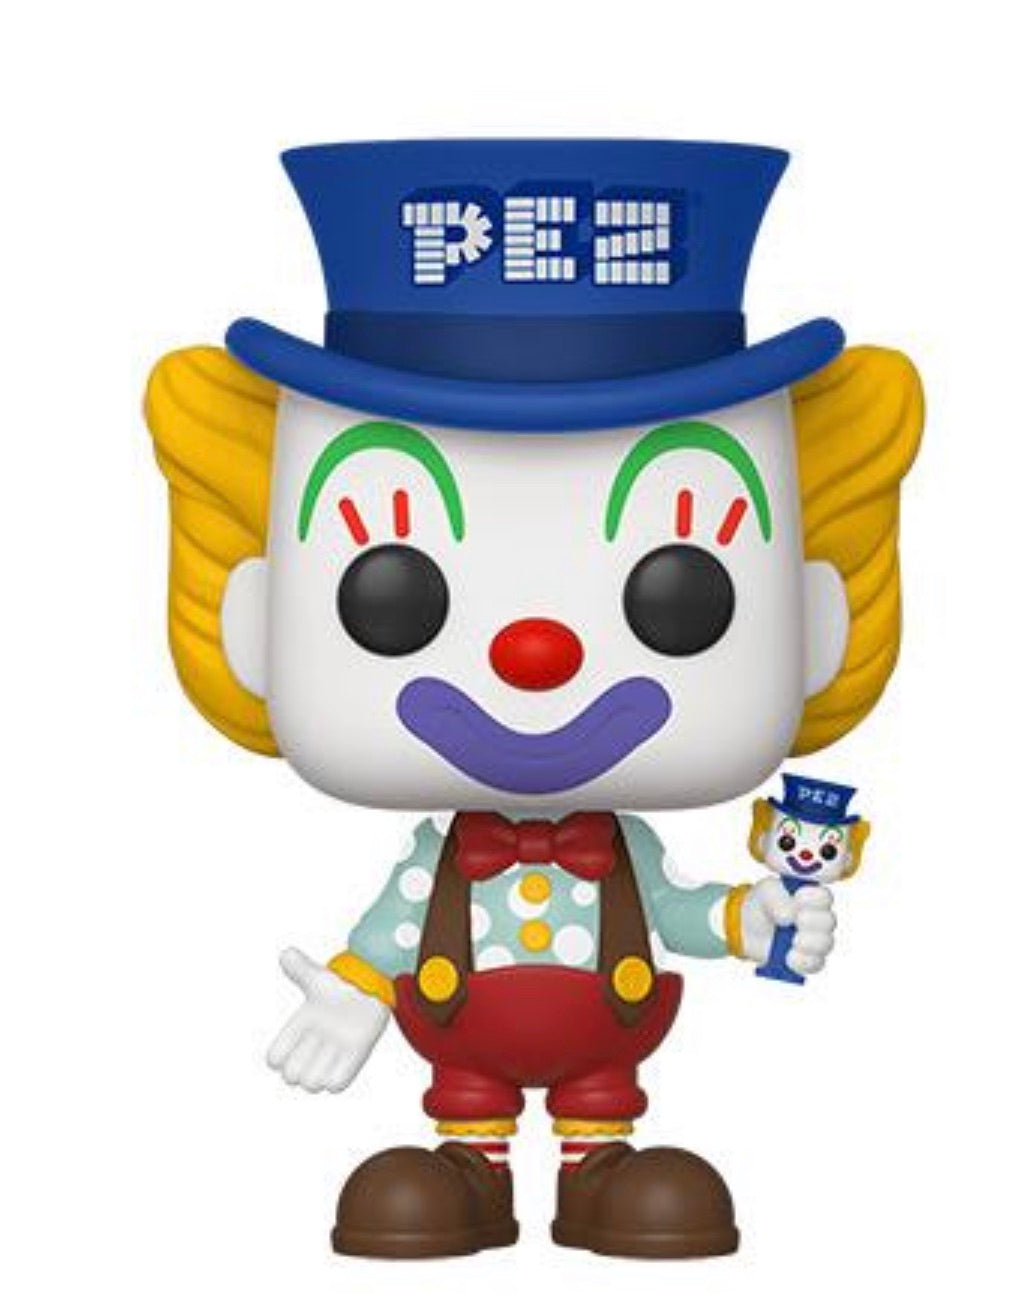 PEZ FUNKO POP! PETER PEZ (BLUE HAT) (PRE-ORDER)